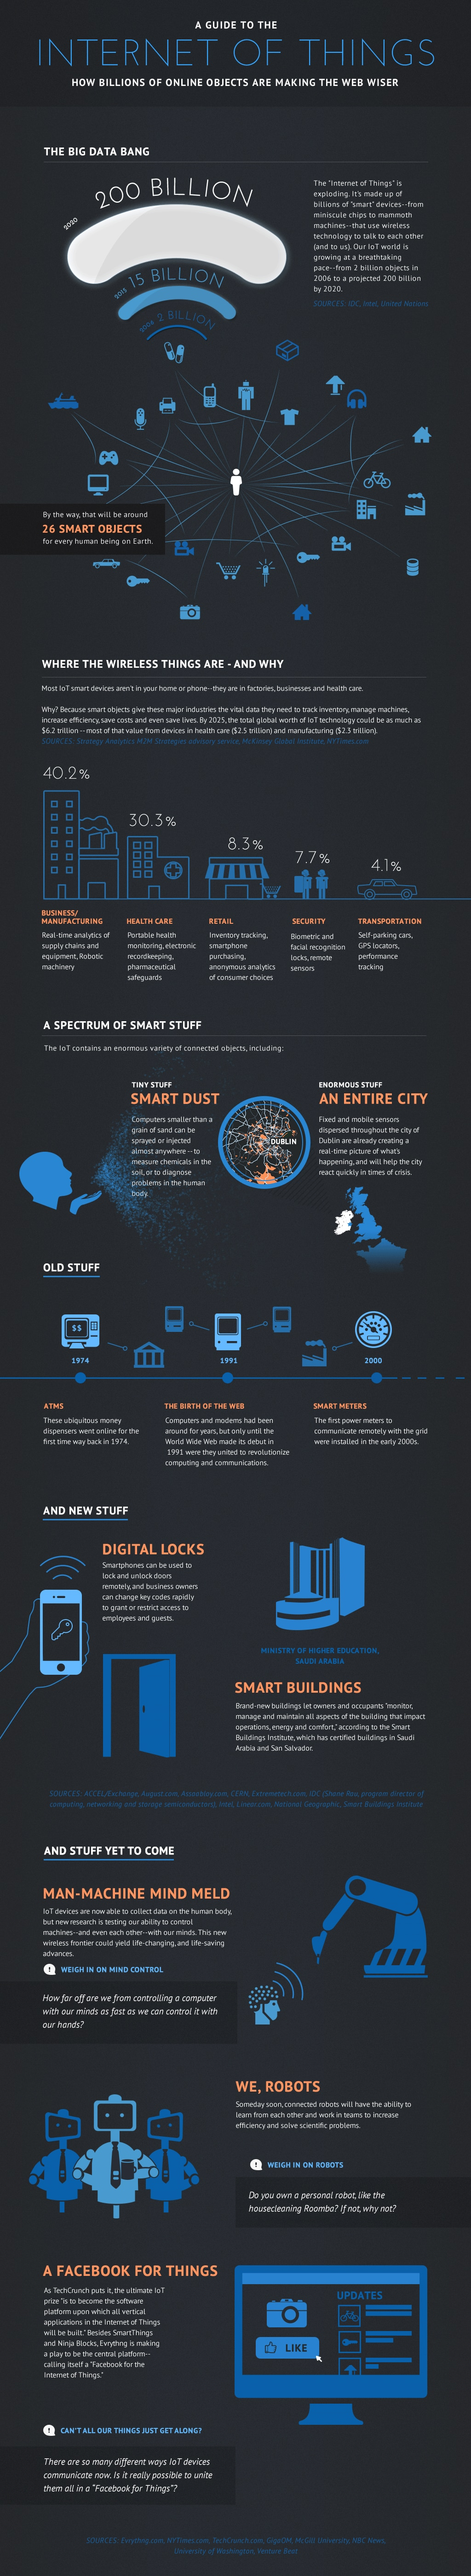 A Guide To The Internet Of Things Infographic - How much is the human body worth infographic